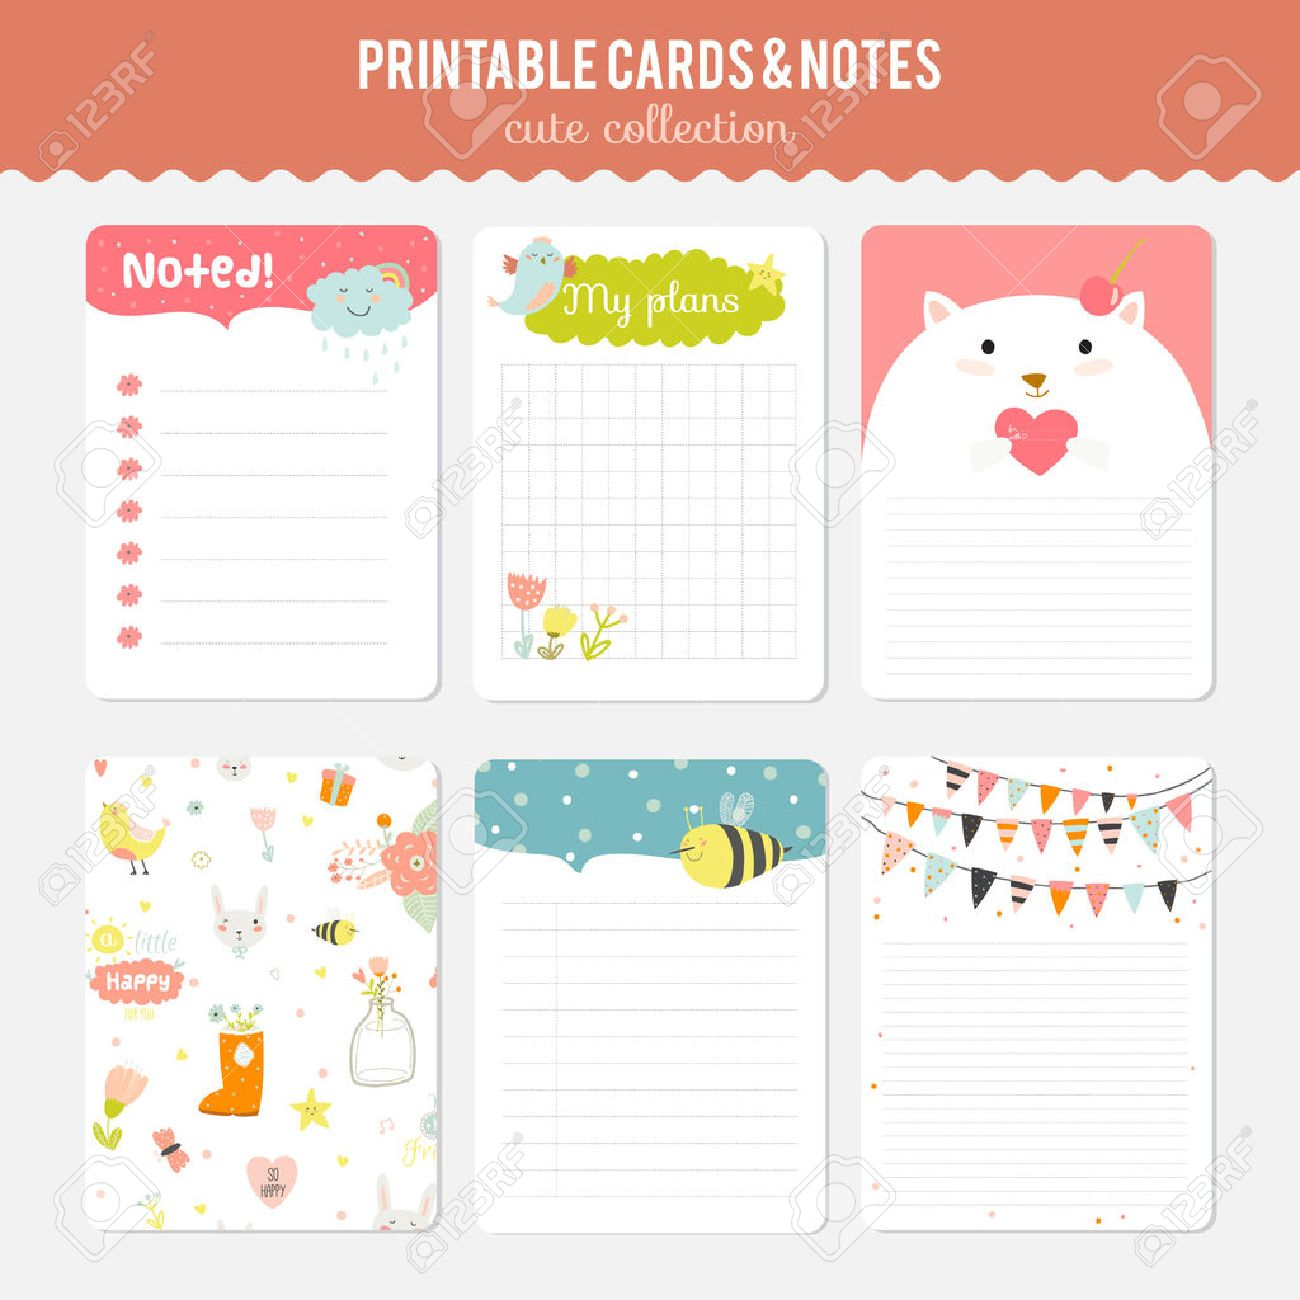 Cute Cards Notes And Stickers With Spring Summer Illustrations Template For Scrapbooking